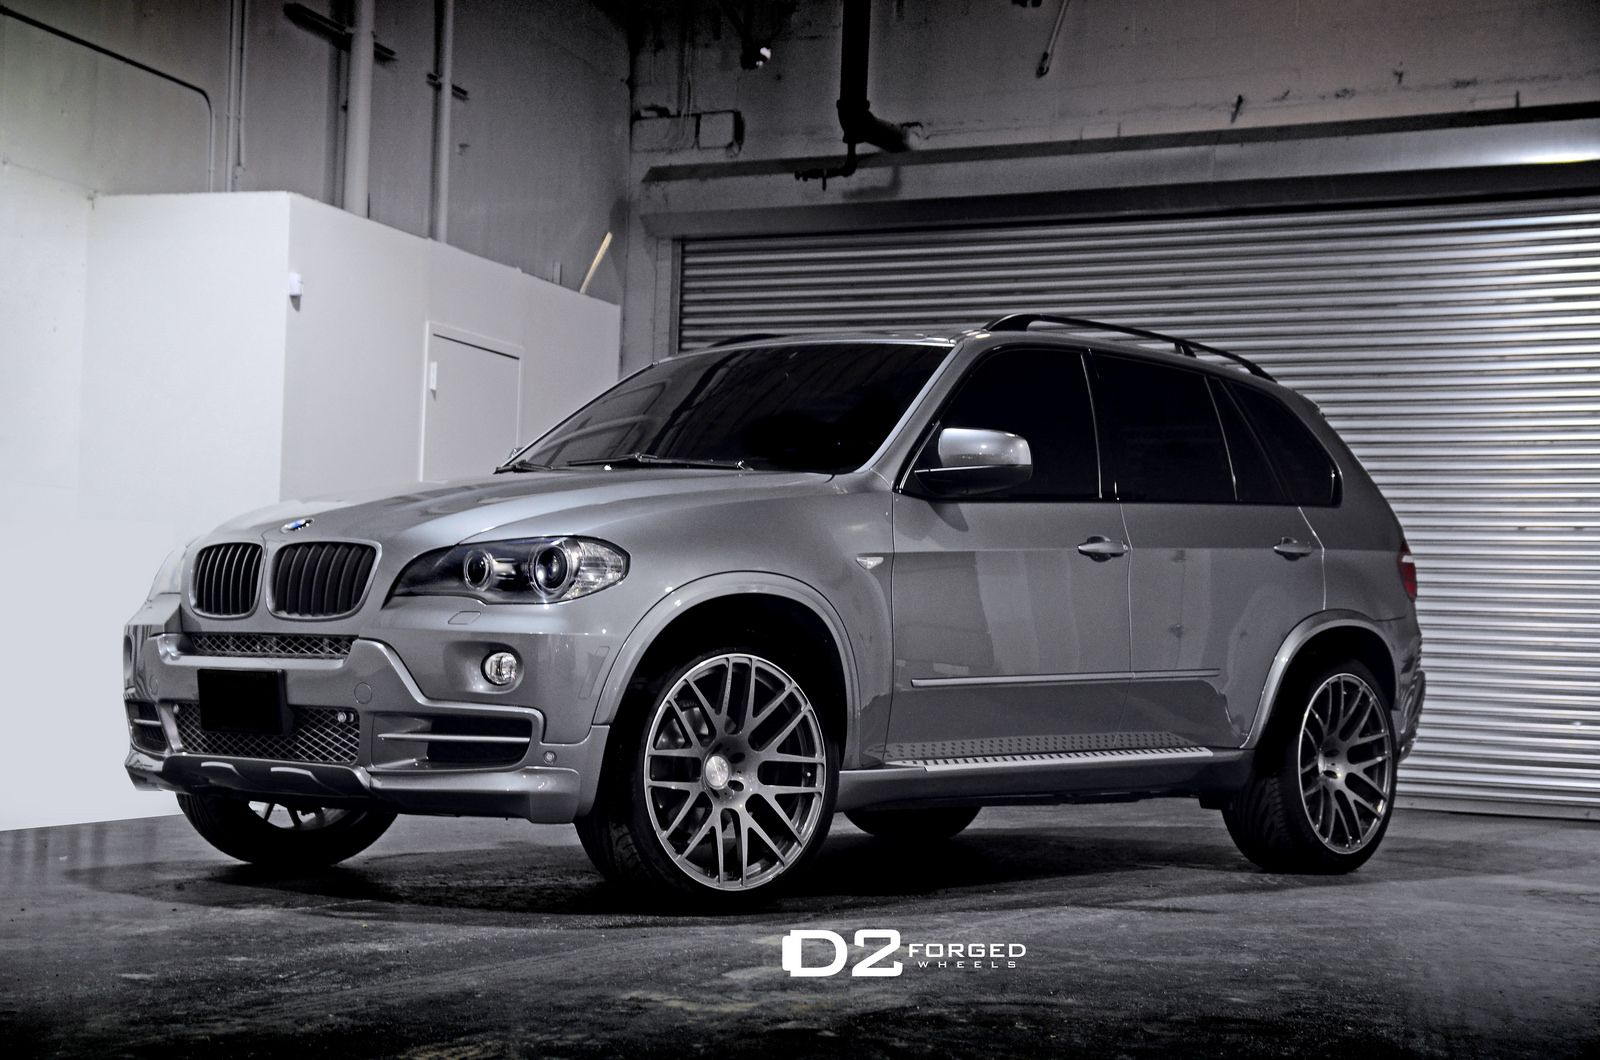 Bmw X5 With Custom D2forged Mb1 Monoblock Wheels With Images